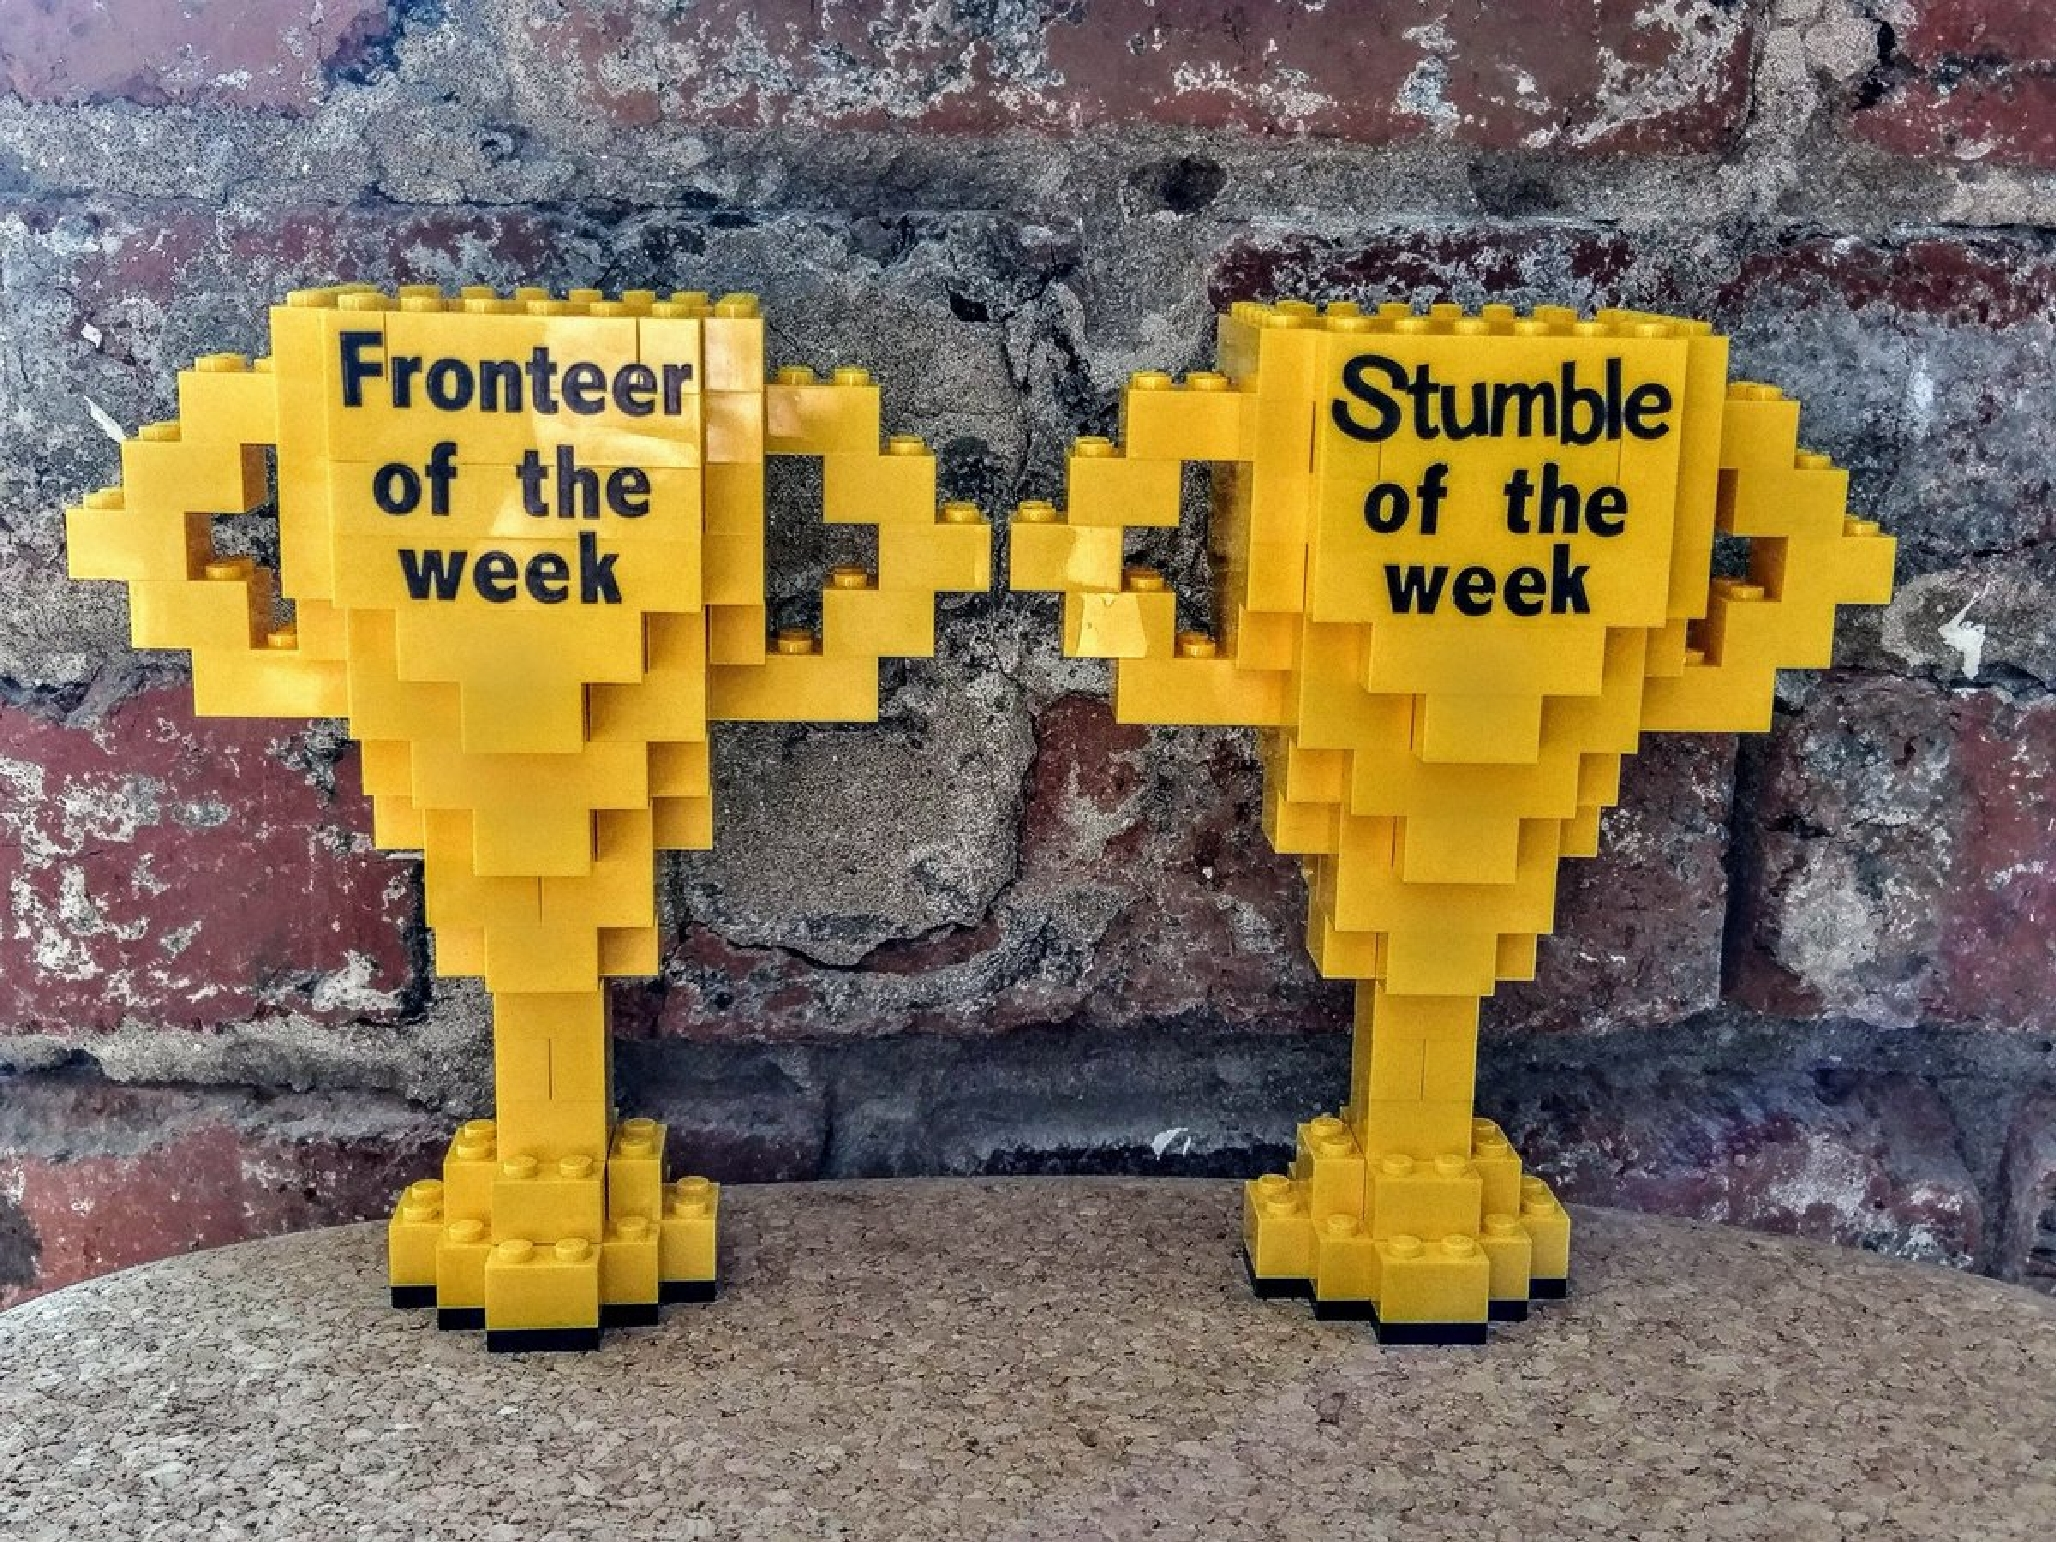 Fronteer of the Week and Stumble of the Week trophies crafted out of legos